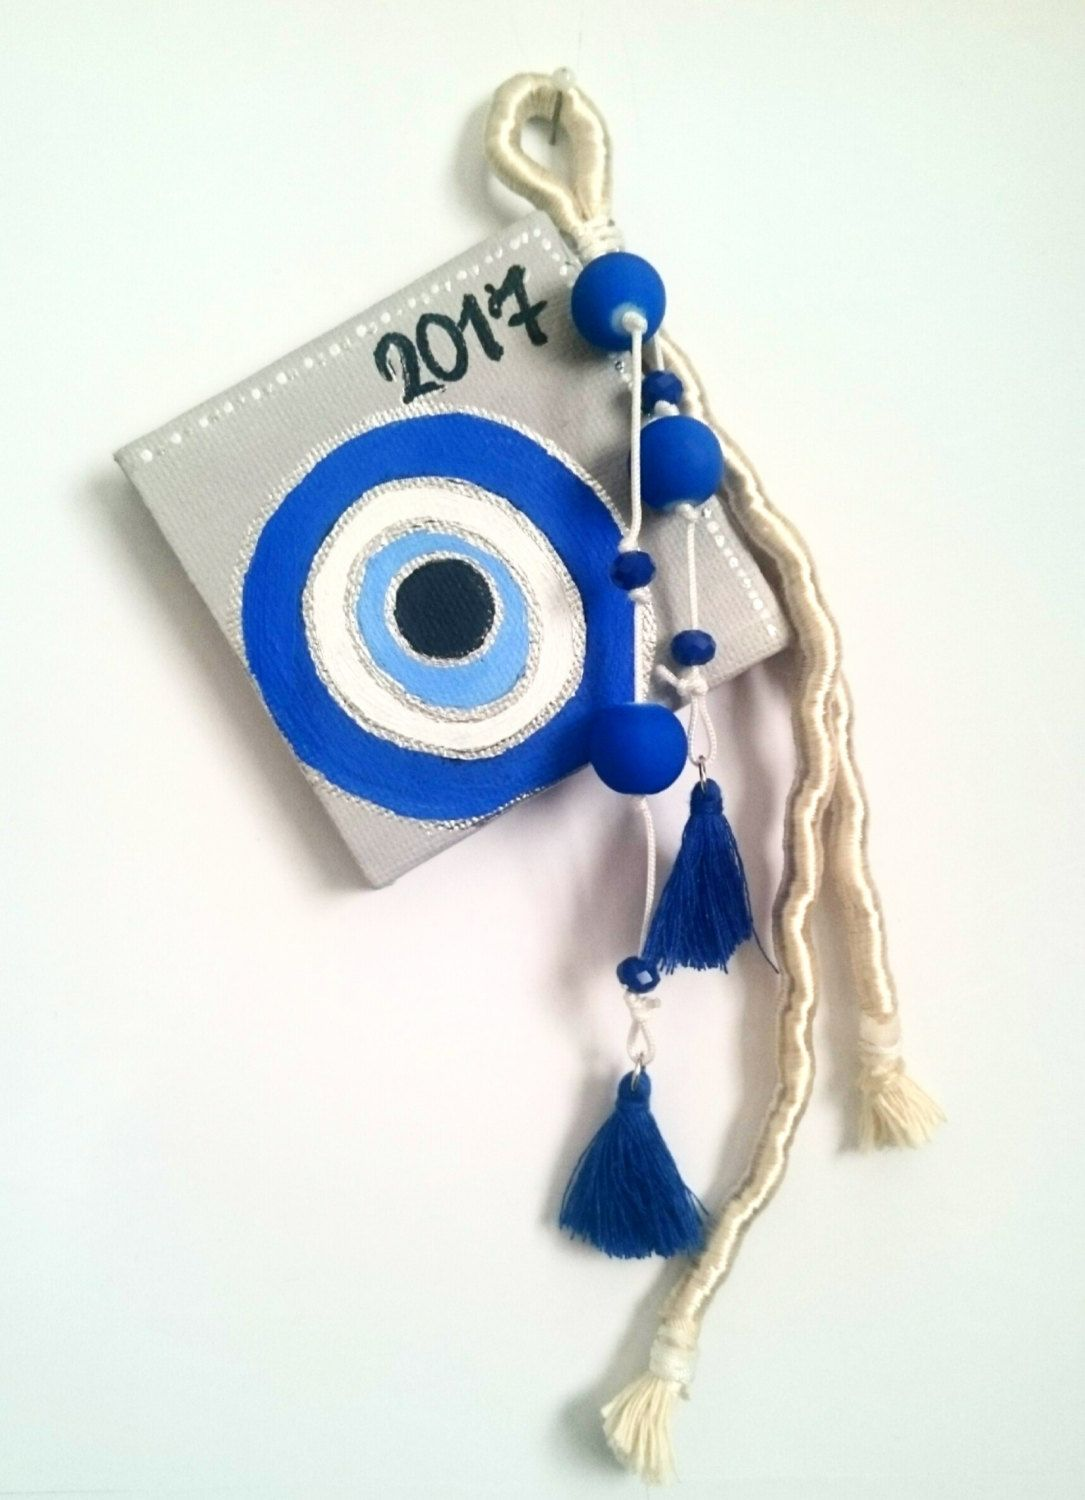 New year lucky charm evil eye wall decor evil eye table decor new year lucky charm evil eye wall decor evil eye table decor mini amipublicfo Gallery